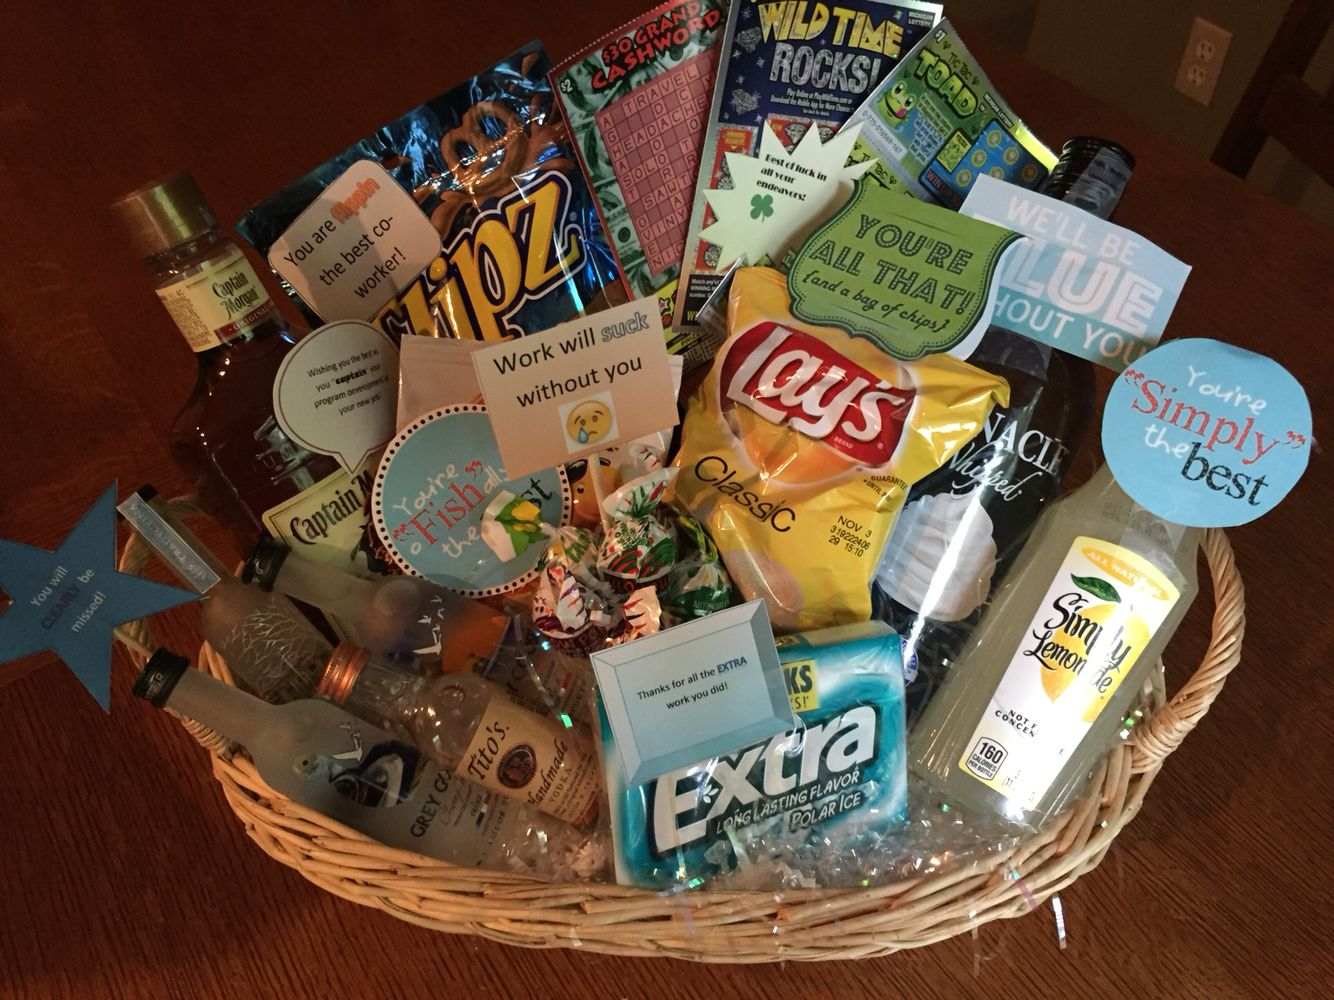 Co worker leaving gift basket pretty proud of myself